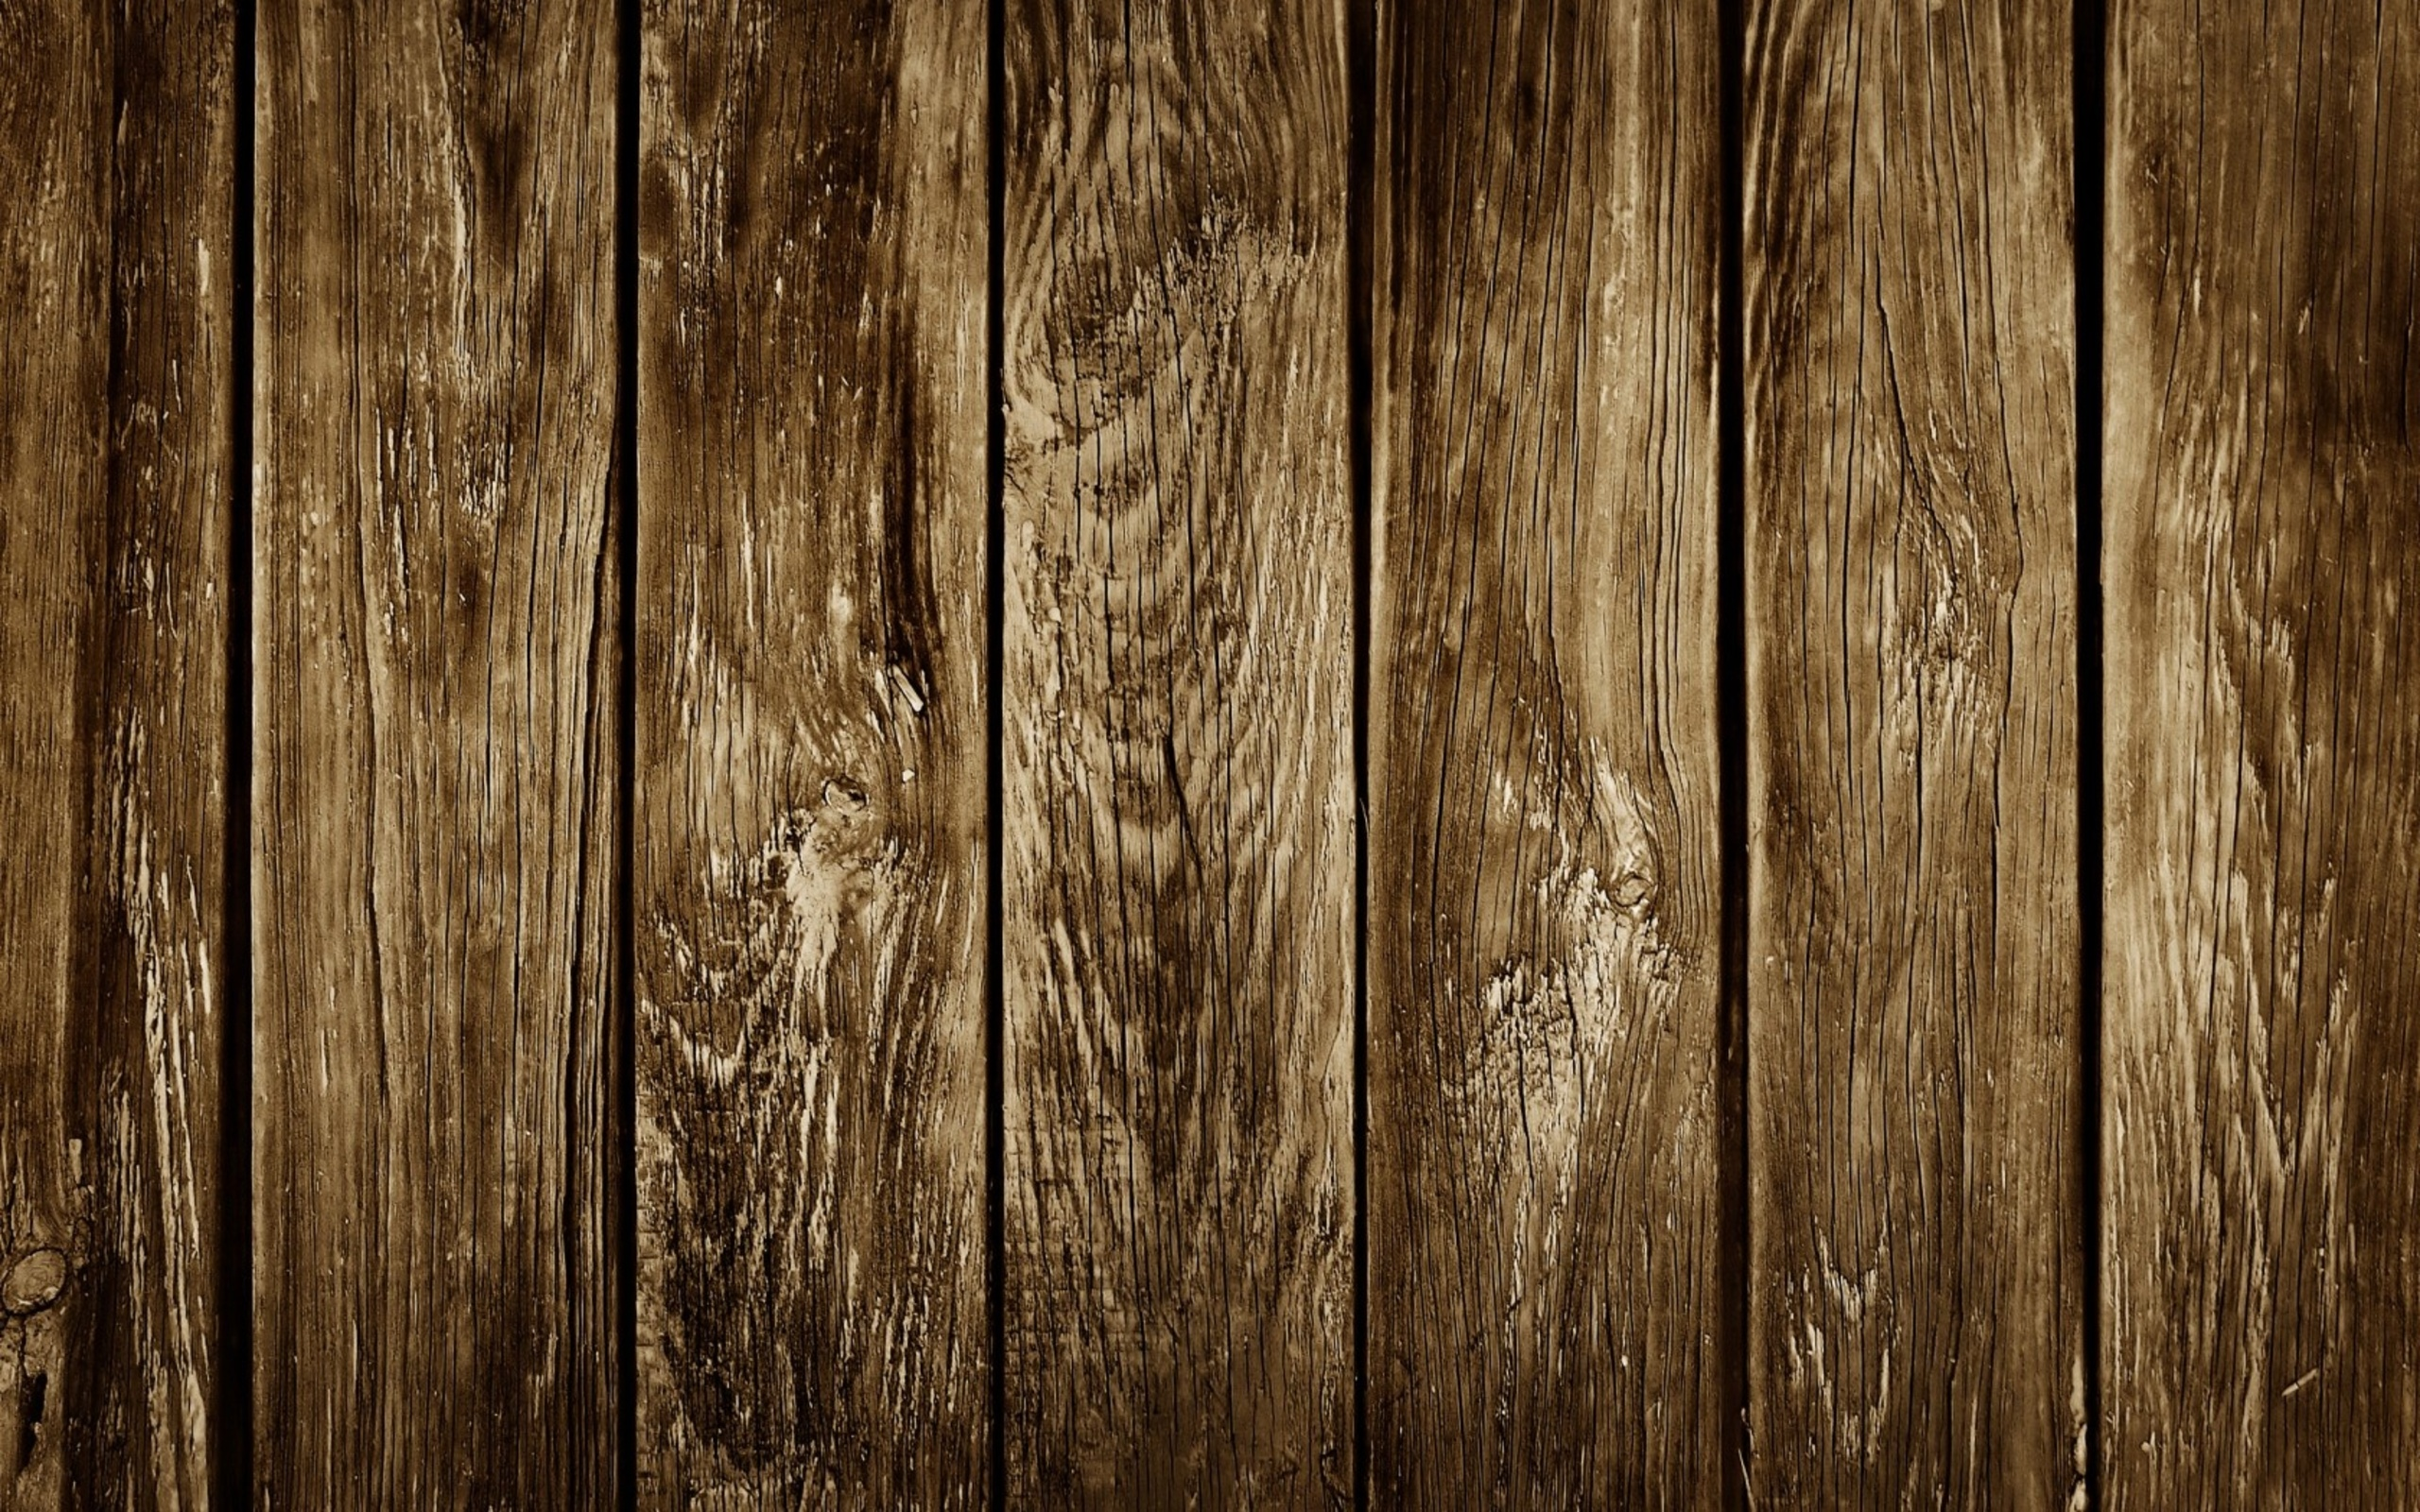 Holz wallpapers hintergr nde 2560x1600 id 370795 for Holz wallpaper